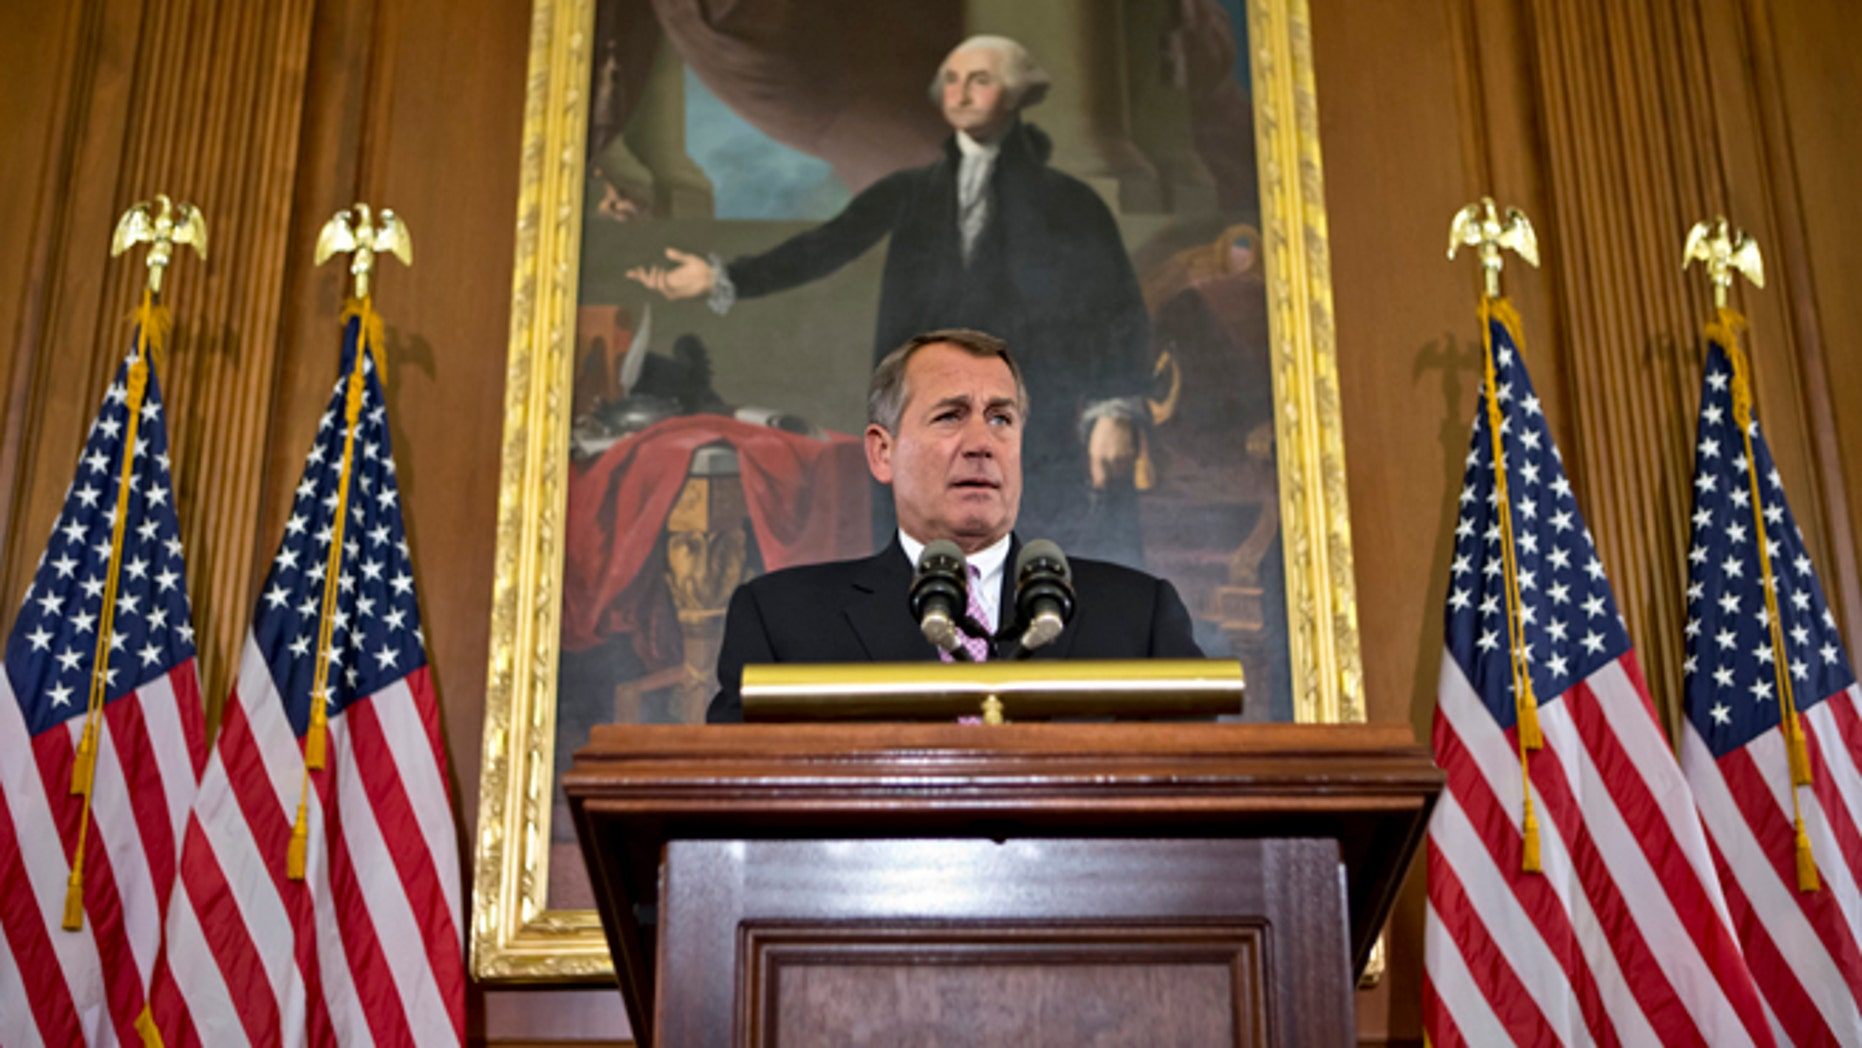 Nov. 7, 2012: House Speaker John Boehner, R-Ohio, talks about the elections and the unfinished business of Congress at the Capitol in Washington.